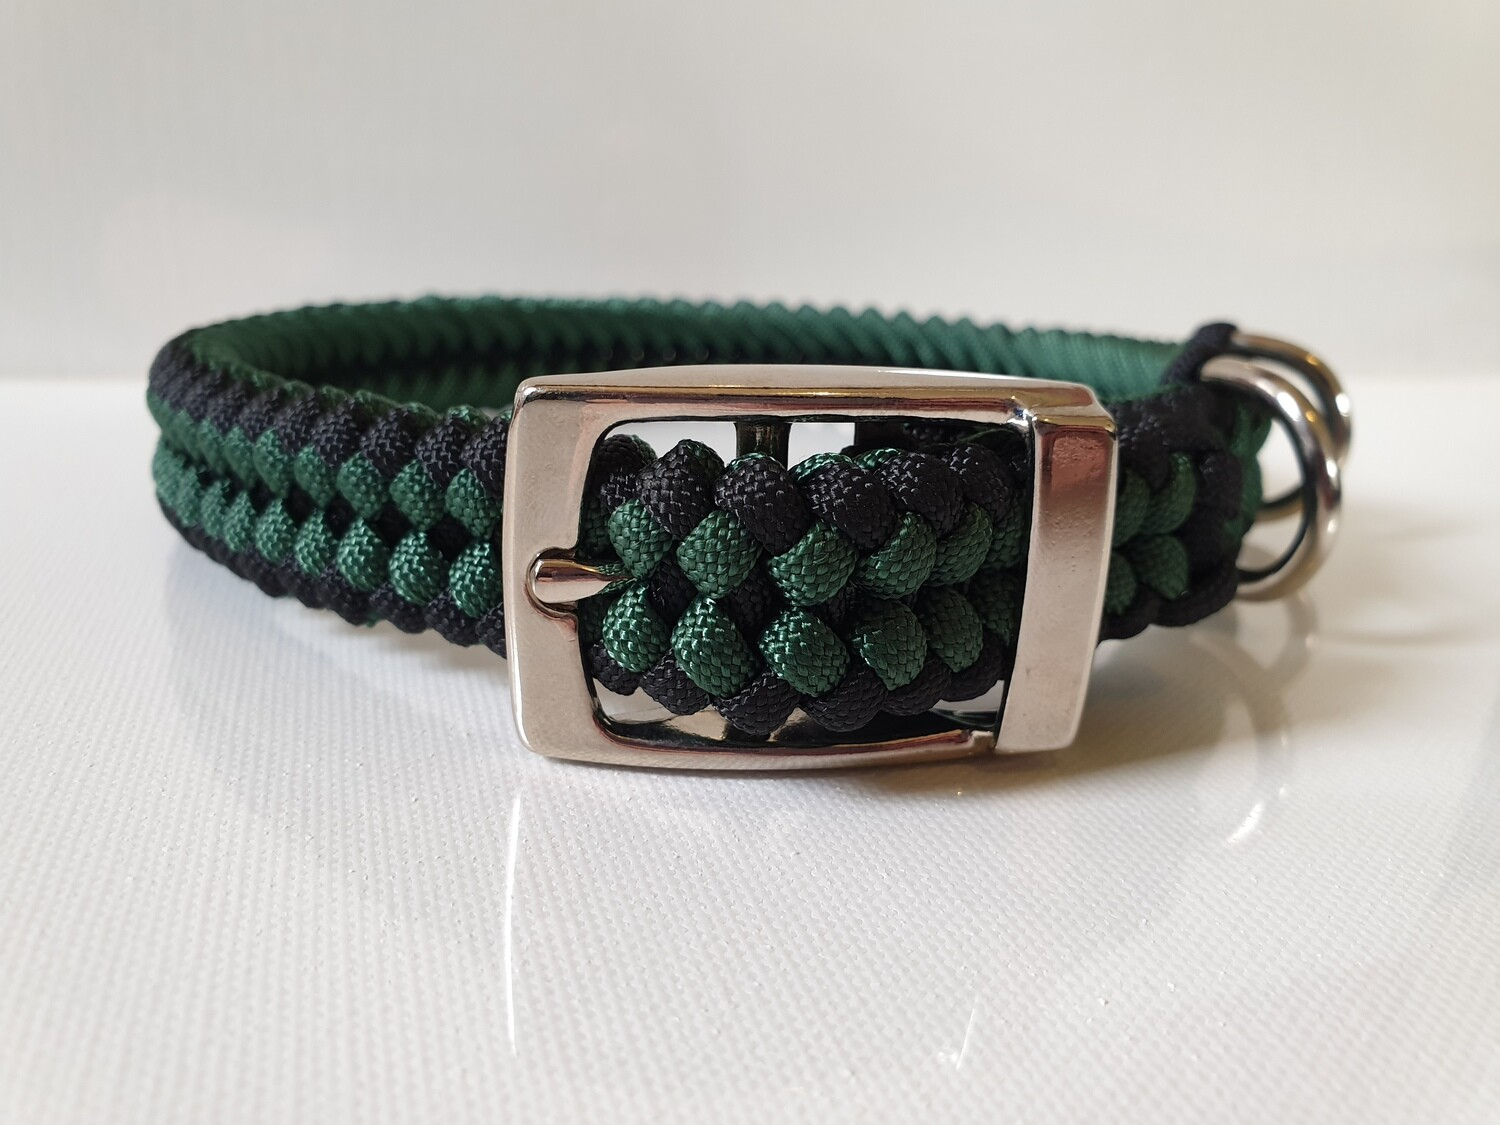 Sanctified Medium Hunter Green/Black Dog Collar